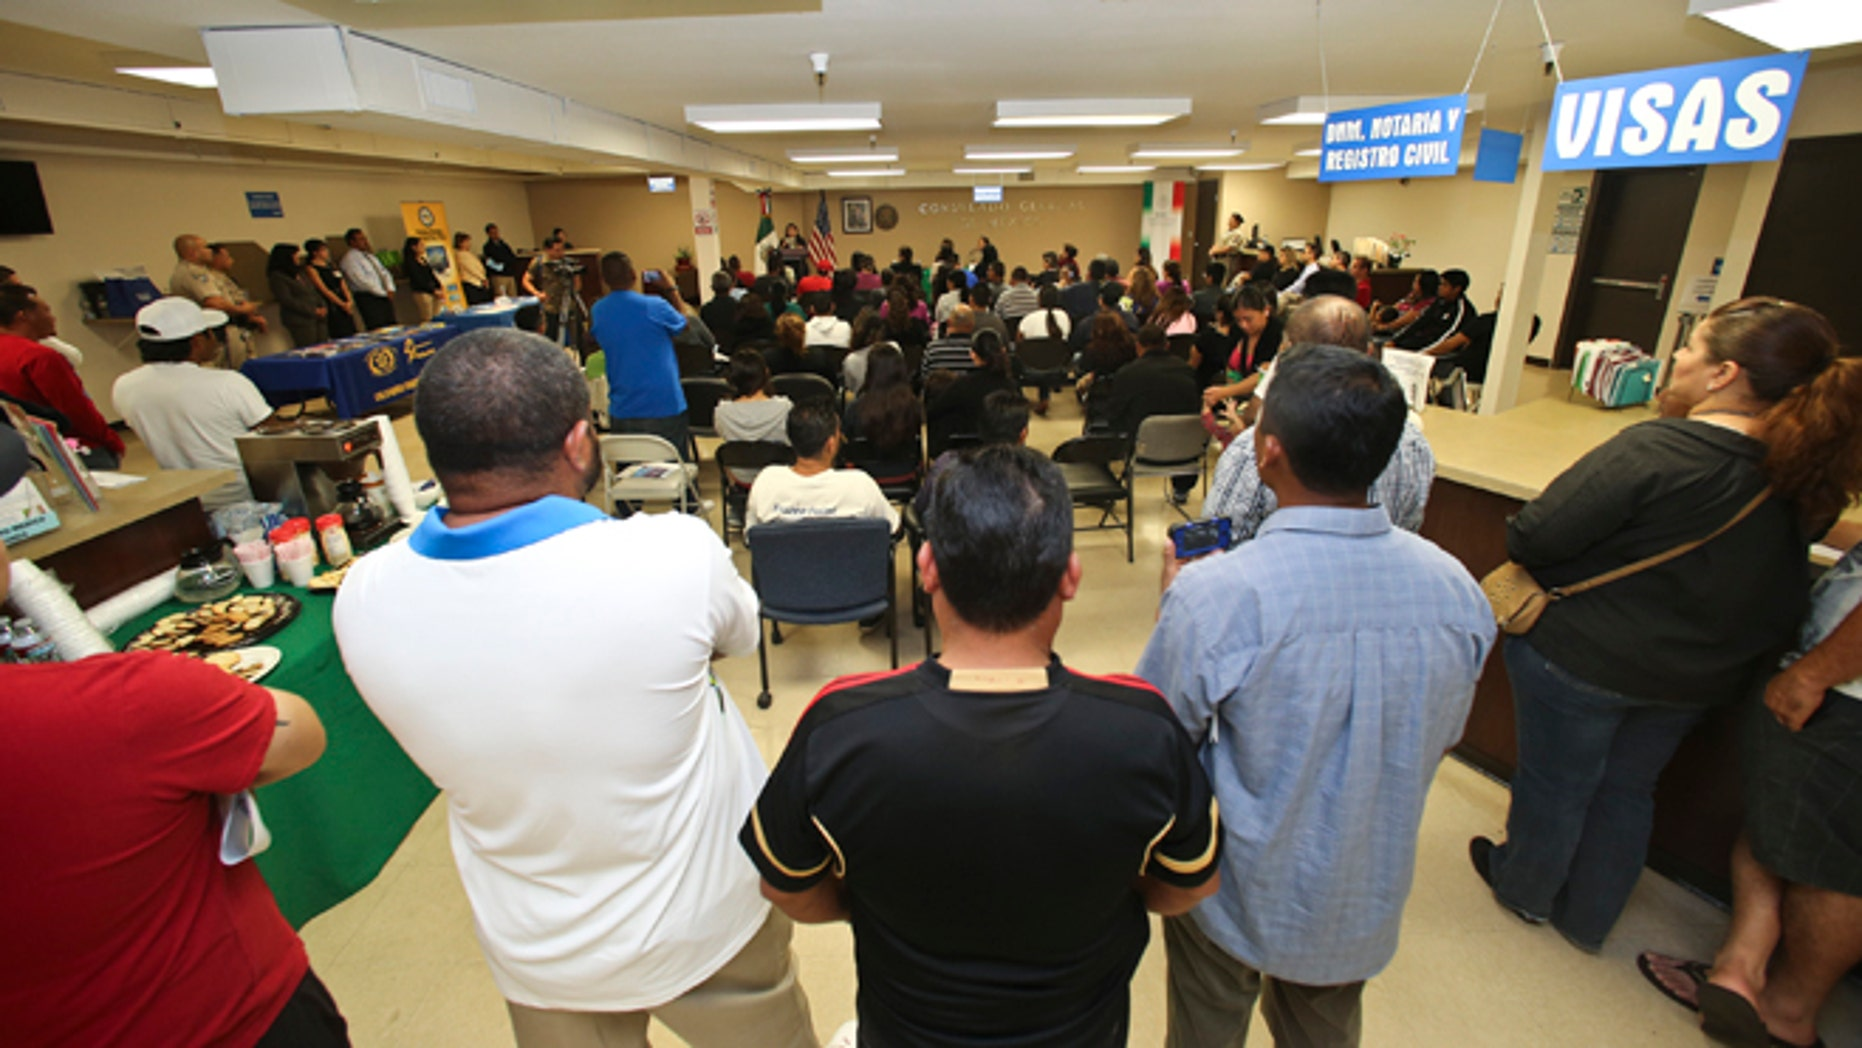 FILE - In this April 23, 2014, file photo, a crowd of approximately 80 immigrants fill a room as they listen to officials explain the process of getting a drivers license, during an information session at the Mexican Consulate, in San Diego. California is gearing up to start issuing driverâs licenses to immigrants in the country illegally in a bid to make the roads safer that could also give more than a million people access to state-issued identification. (AP Photo/Lenny Ignelzi,File)